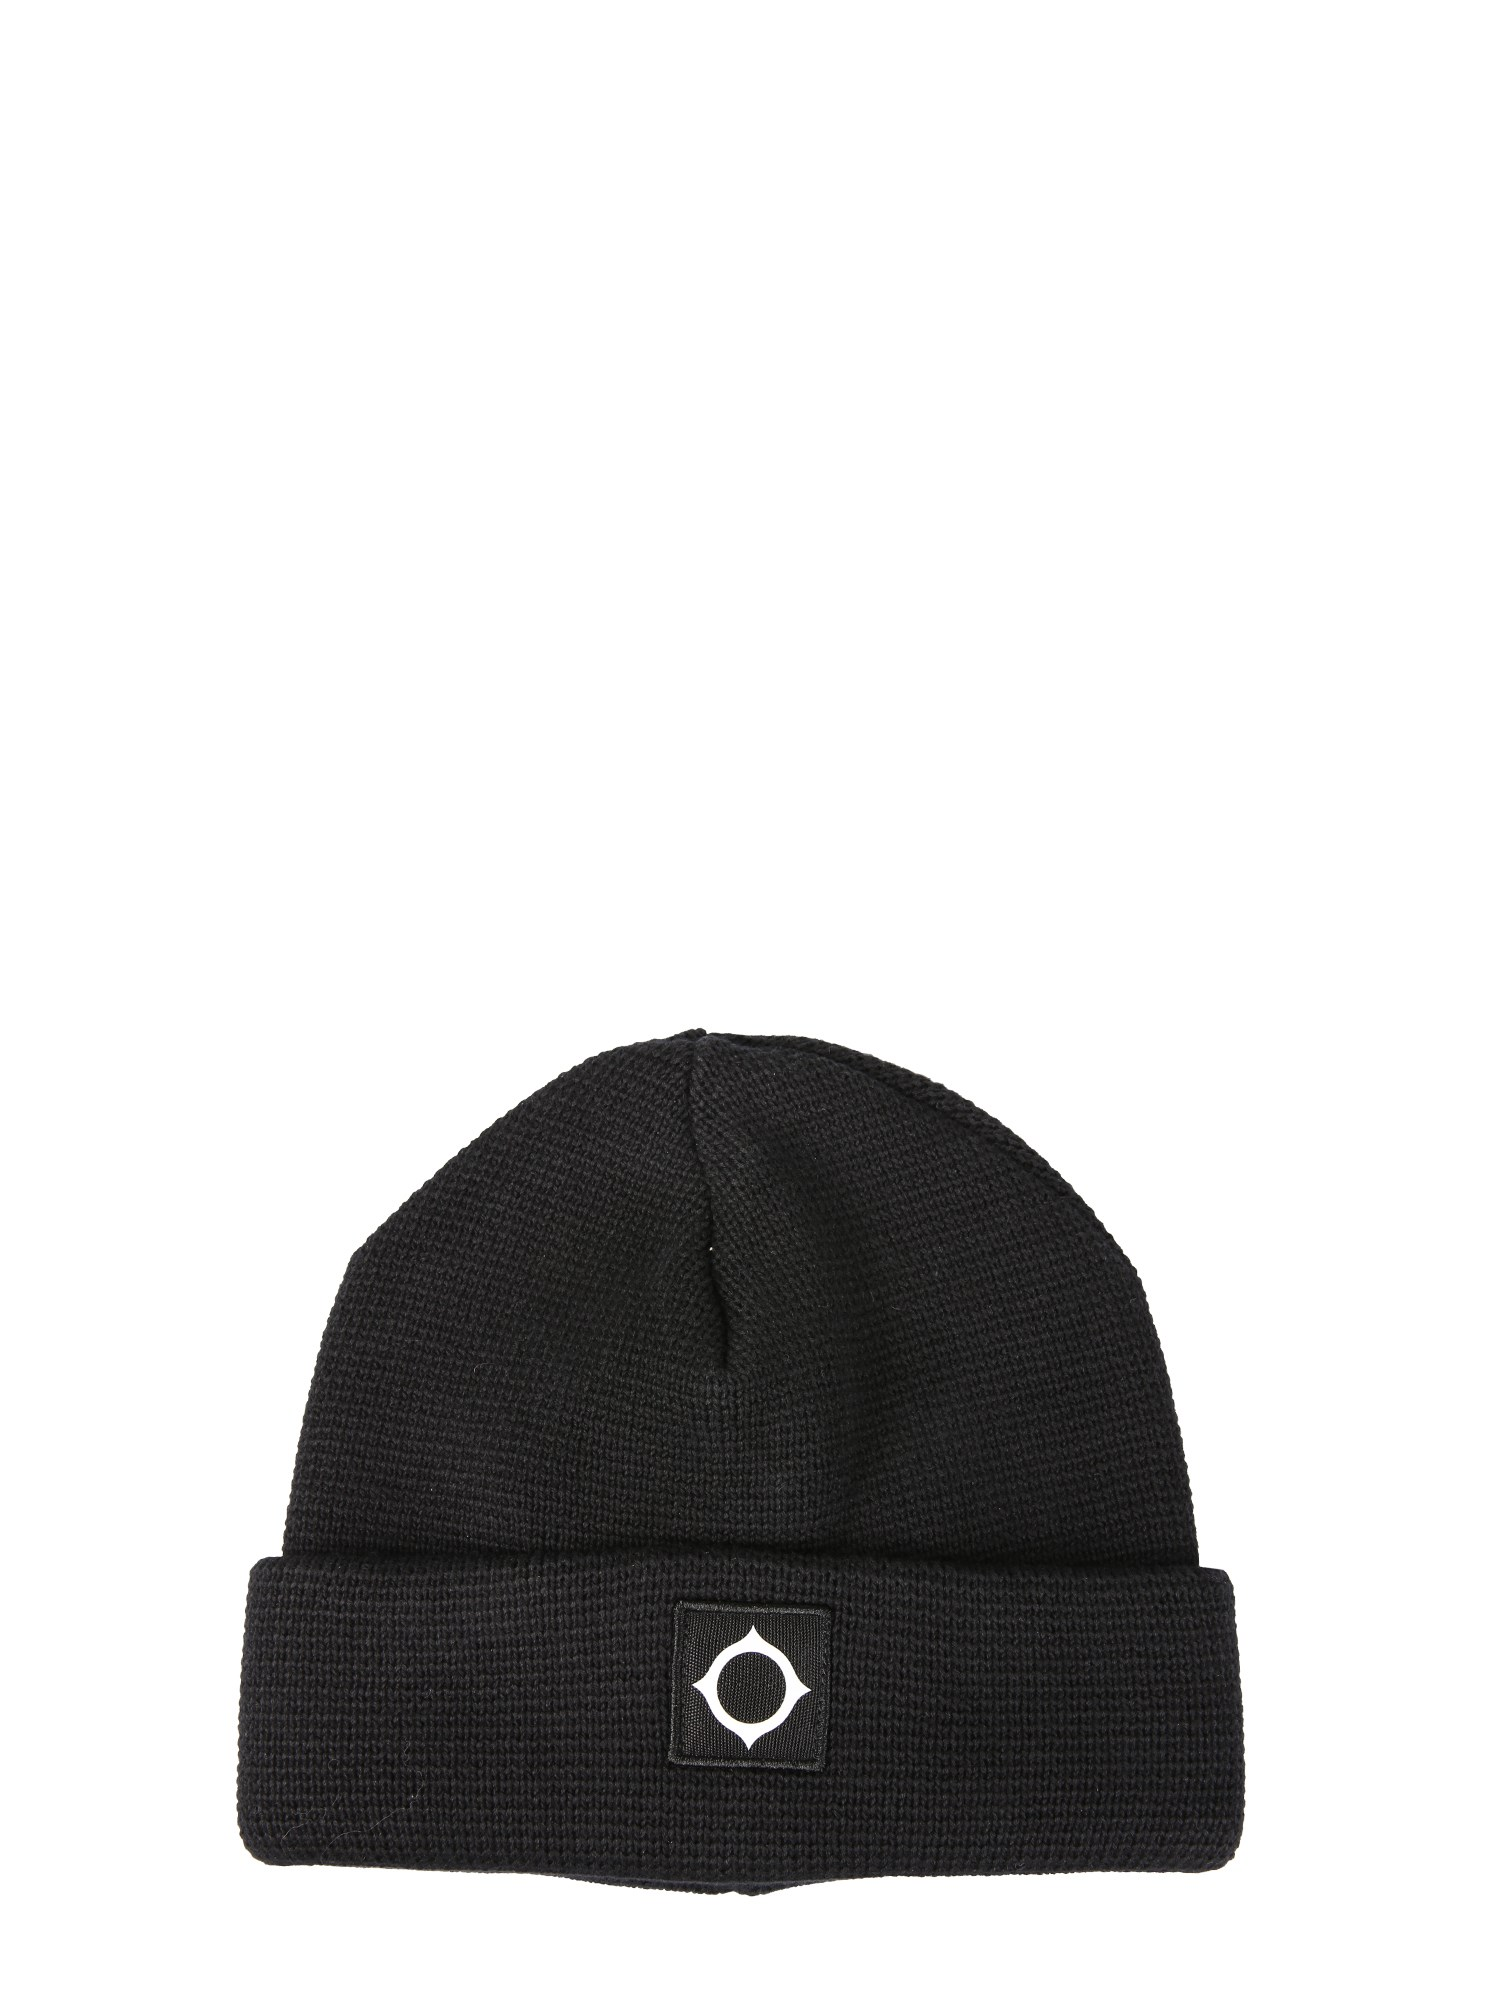 "Ma.strum Hats MA. STRUM ""MILANO"" KNIT HAT"